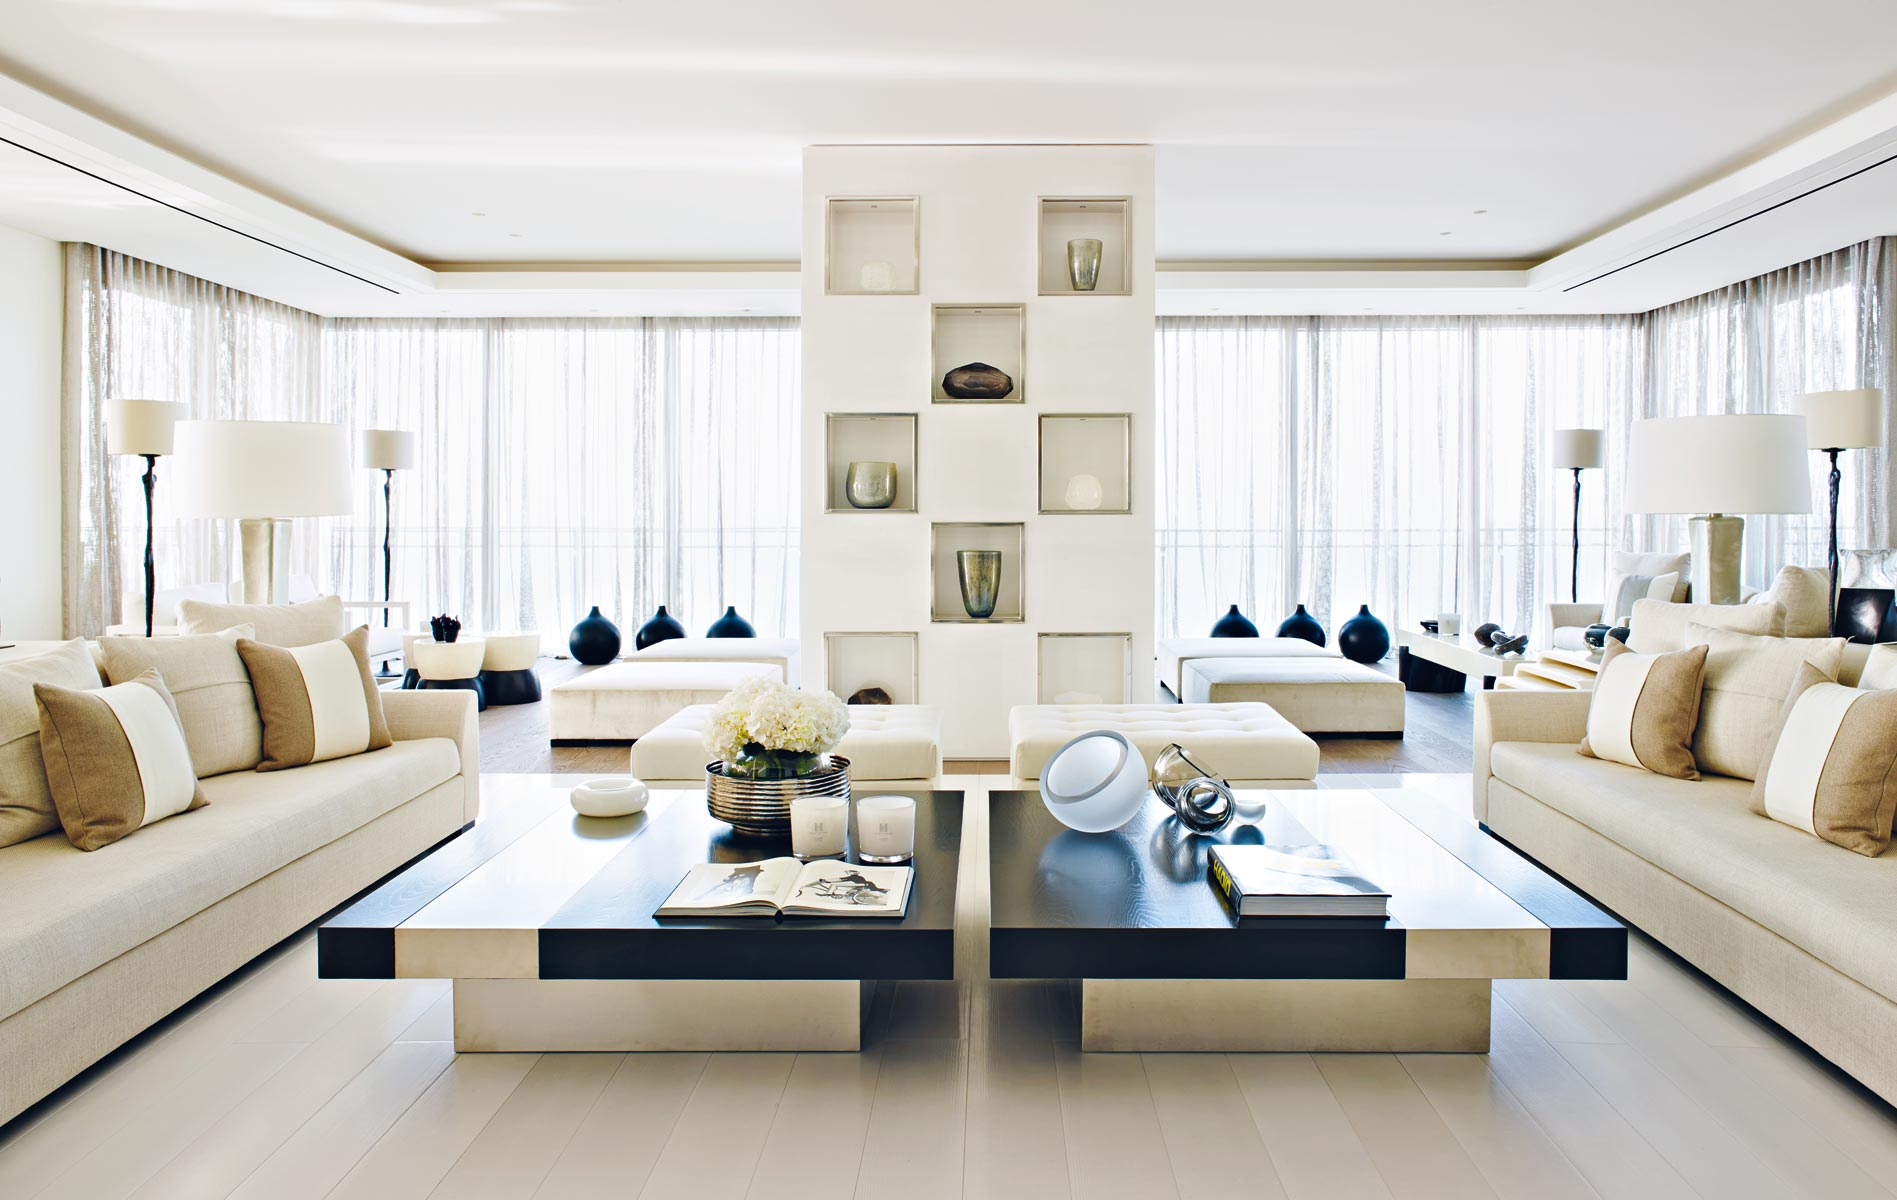 Top interior designer the work of kelly hoppen for Top 10 interior designers